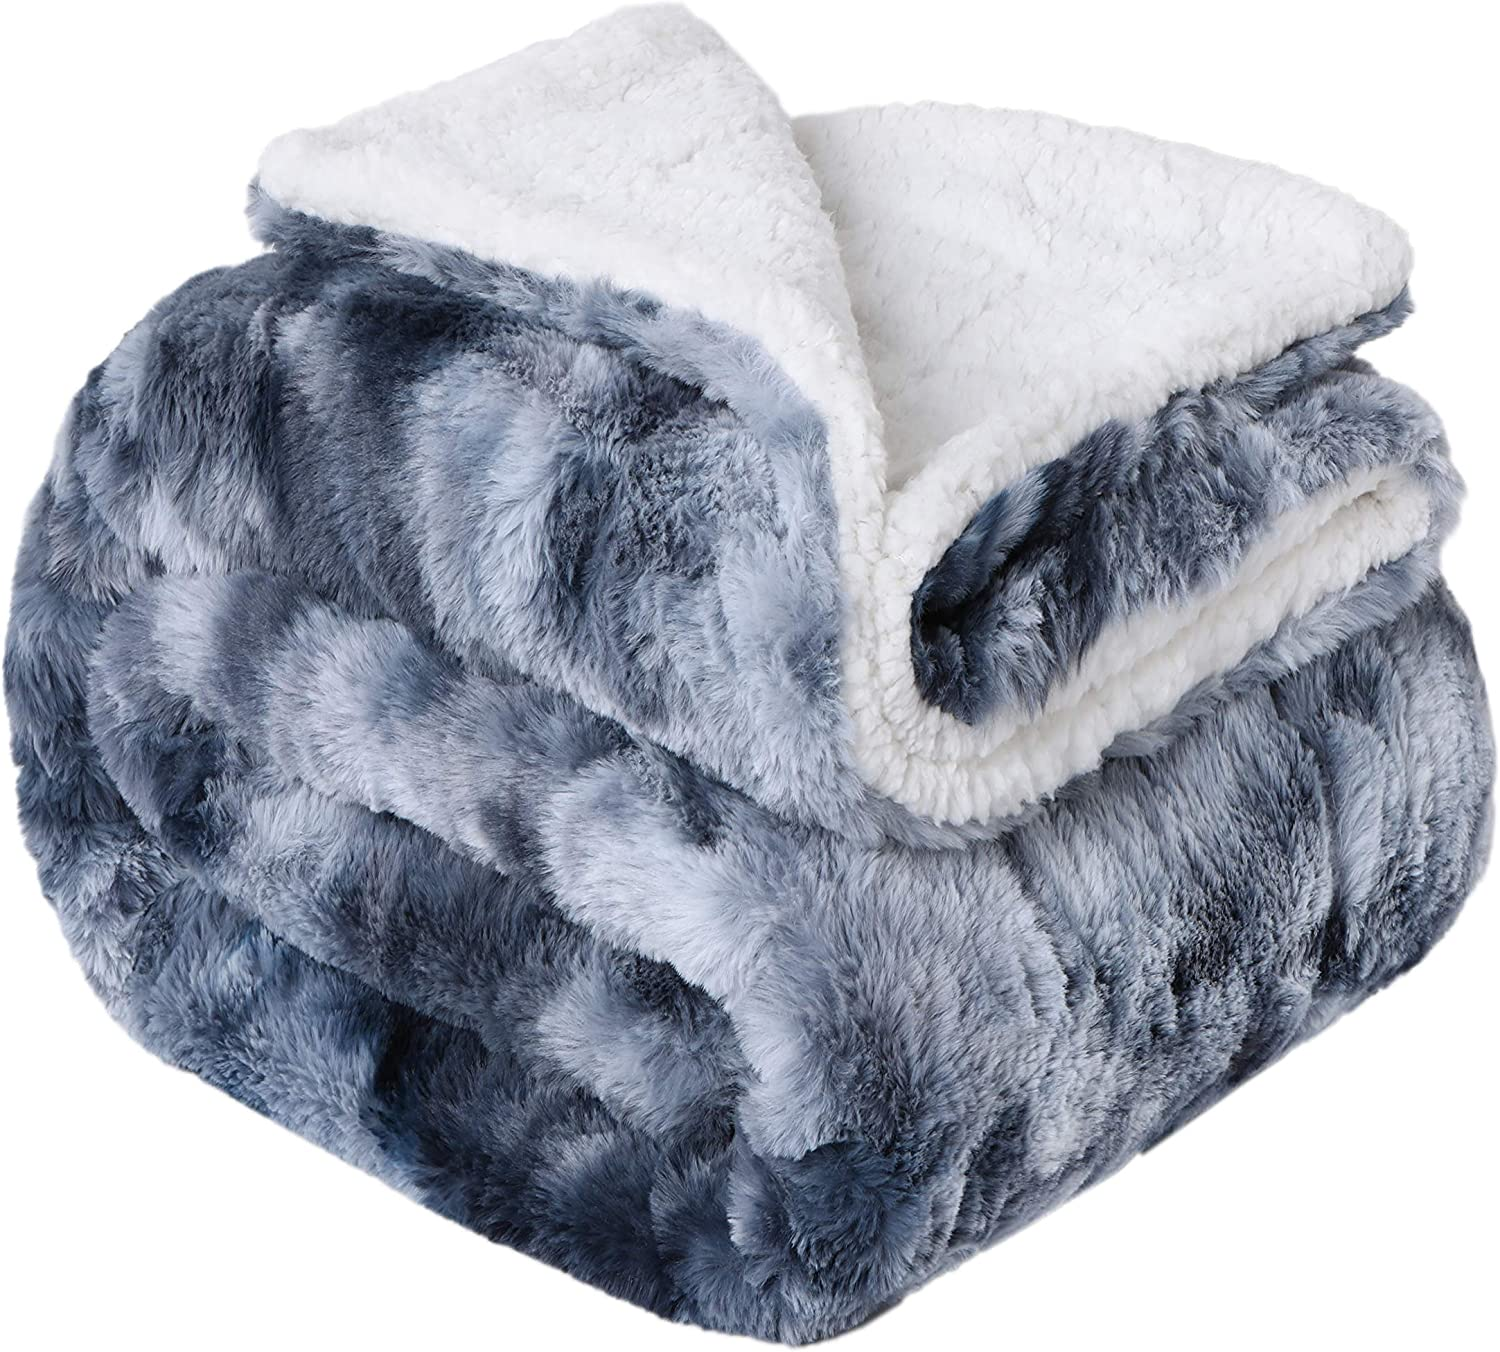 Yukowgu Cozy Tie Dye Faux Fur Blanket Throw, Fuzzy Reversible Sherpa Blankets for Bed Couch Room Décor (Navy, Throw 50 x 60 inches)